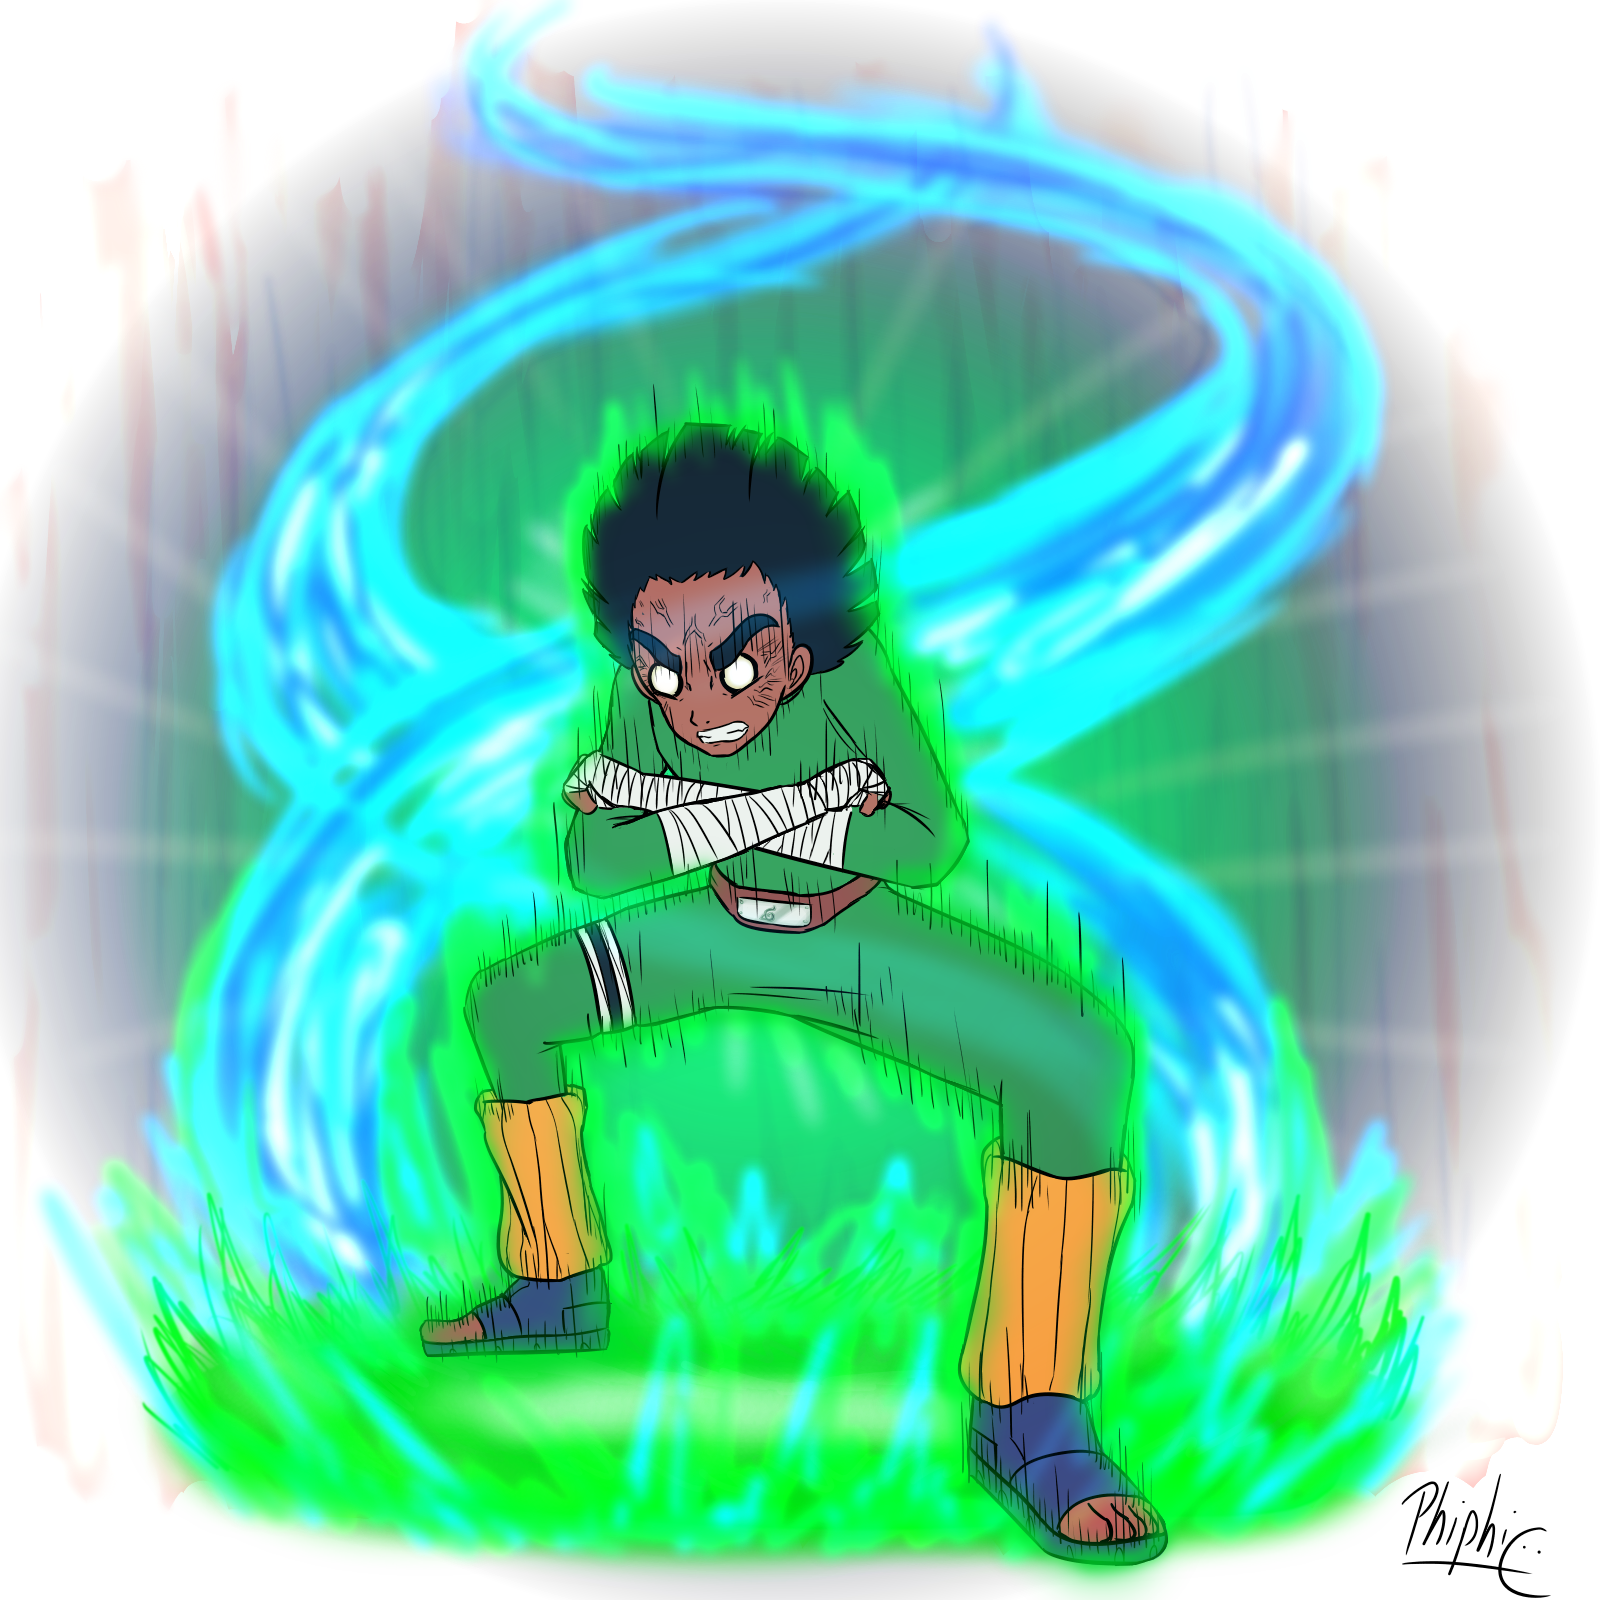 14- Rock Lee (Naruto) [Growing Challenge] By PhiphiAuThon